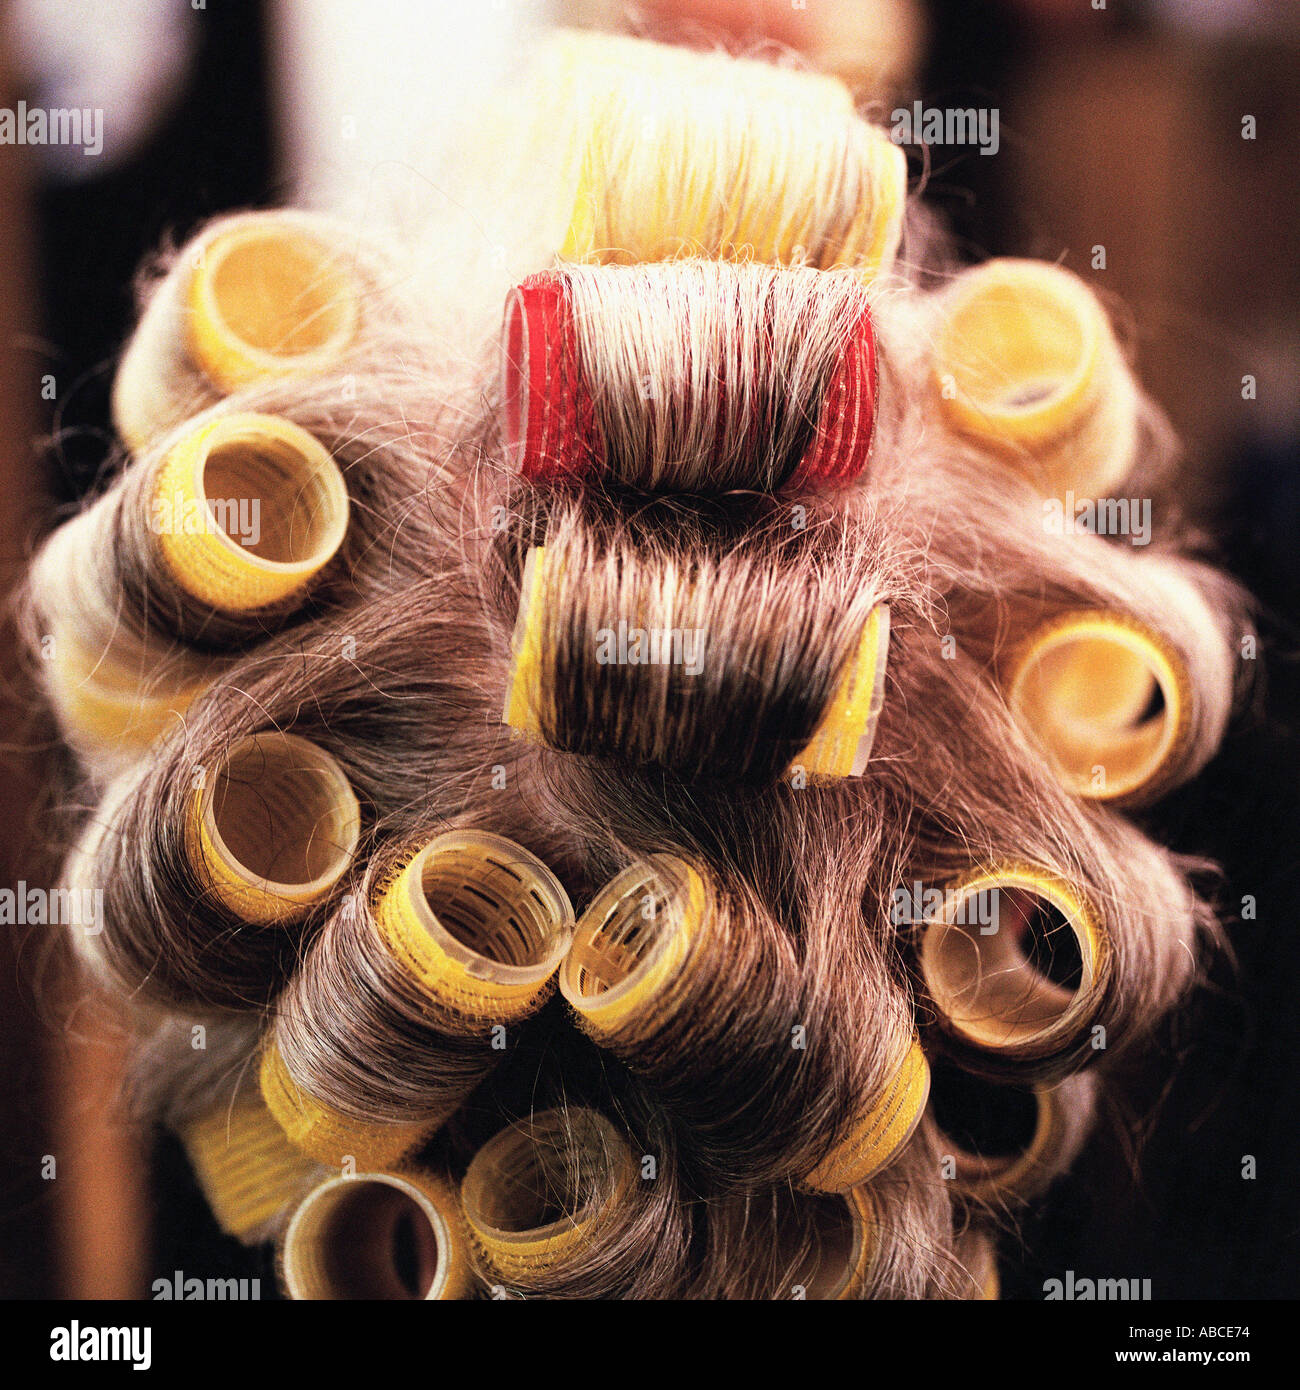 Womans hair in rollers - Stock Image